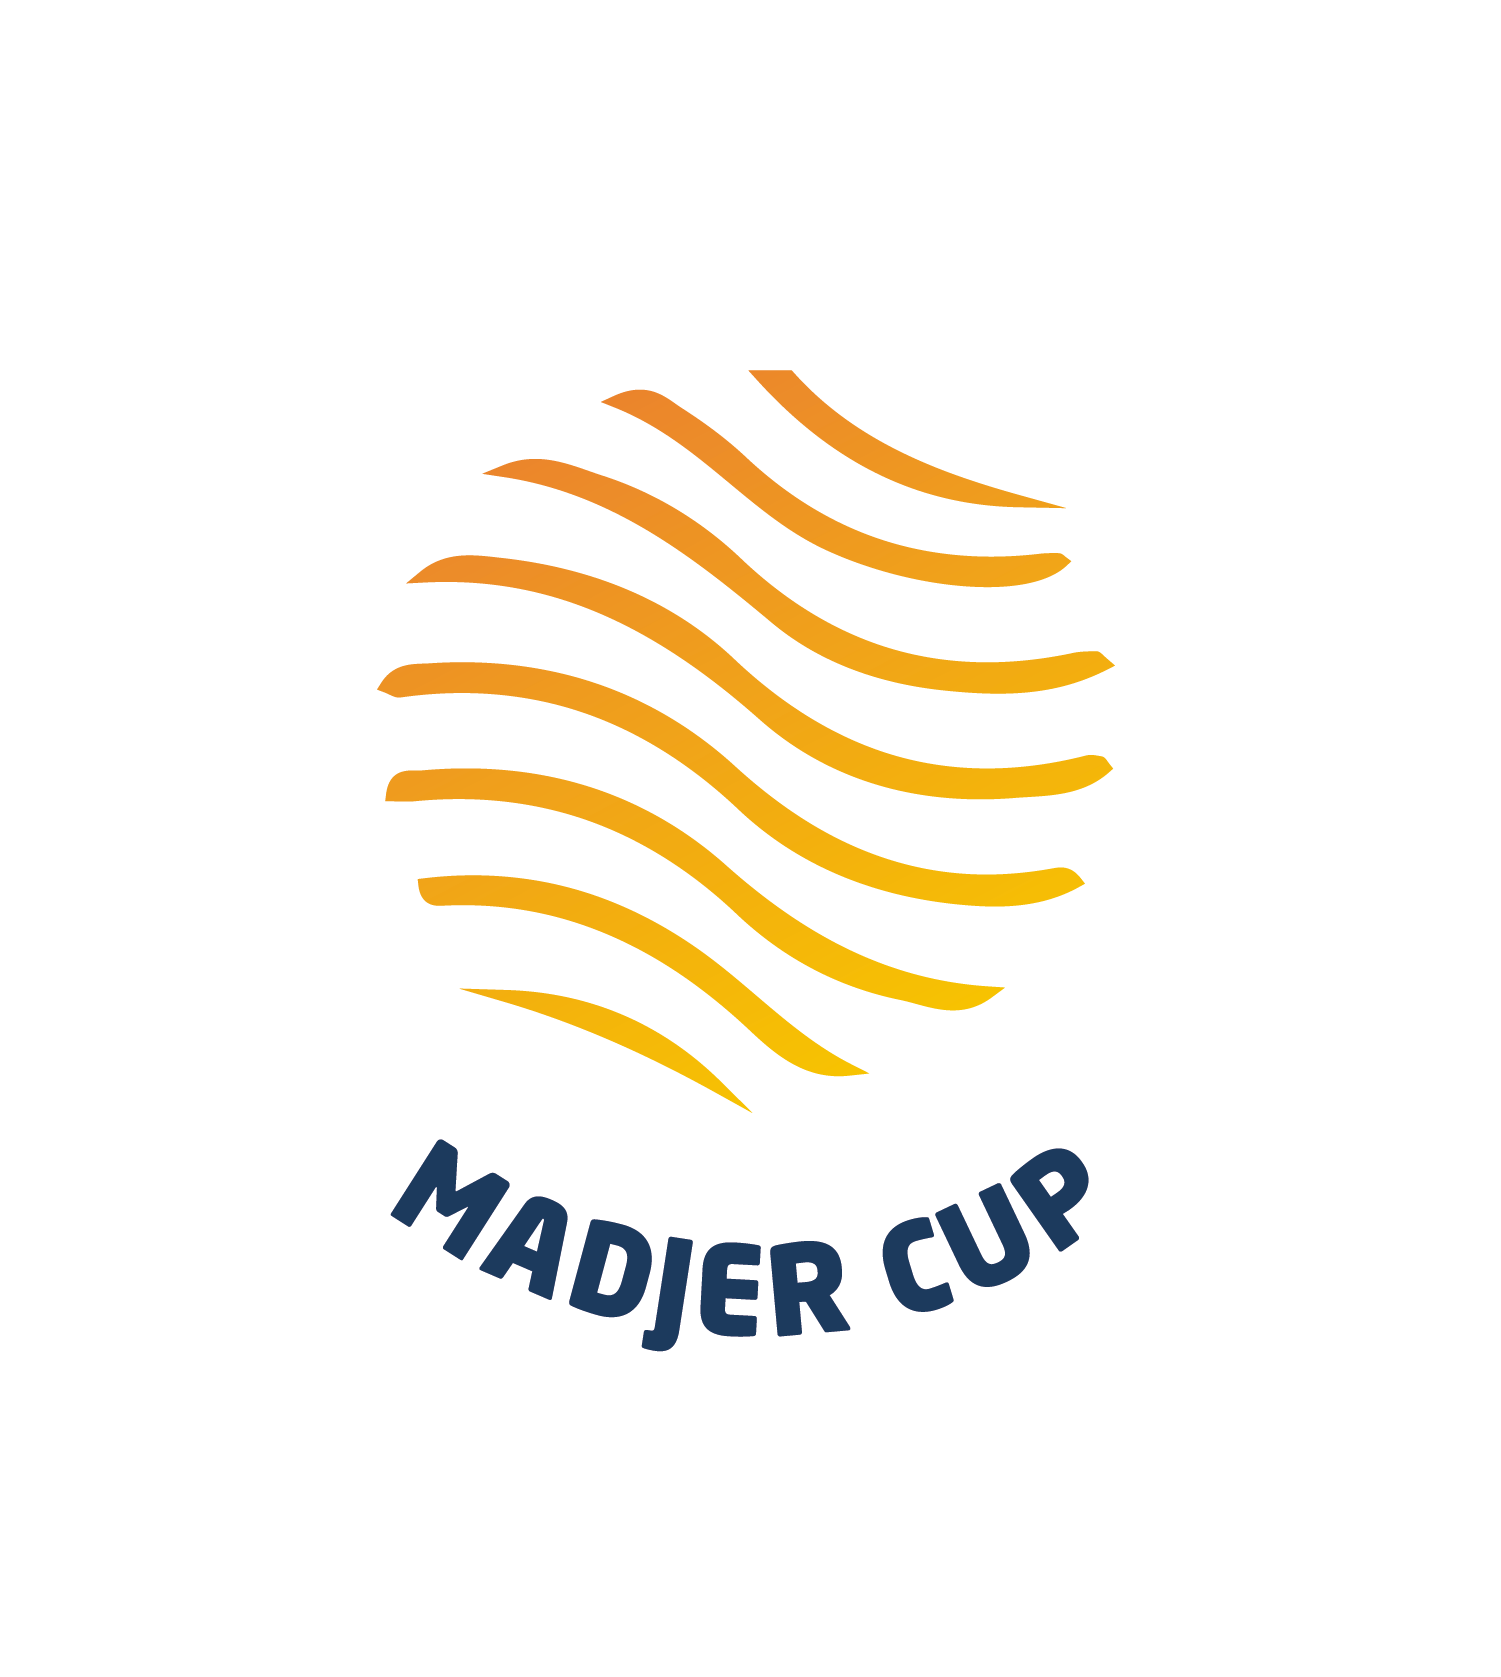 Madjer Cup 2021 - International Youth Championship